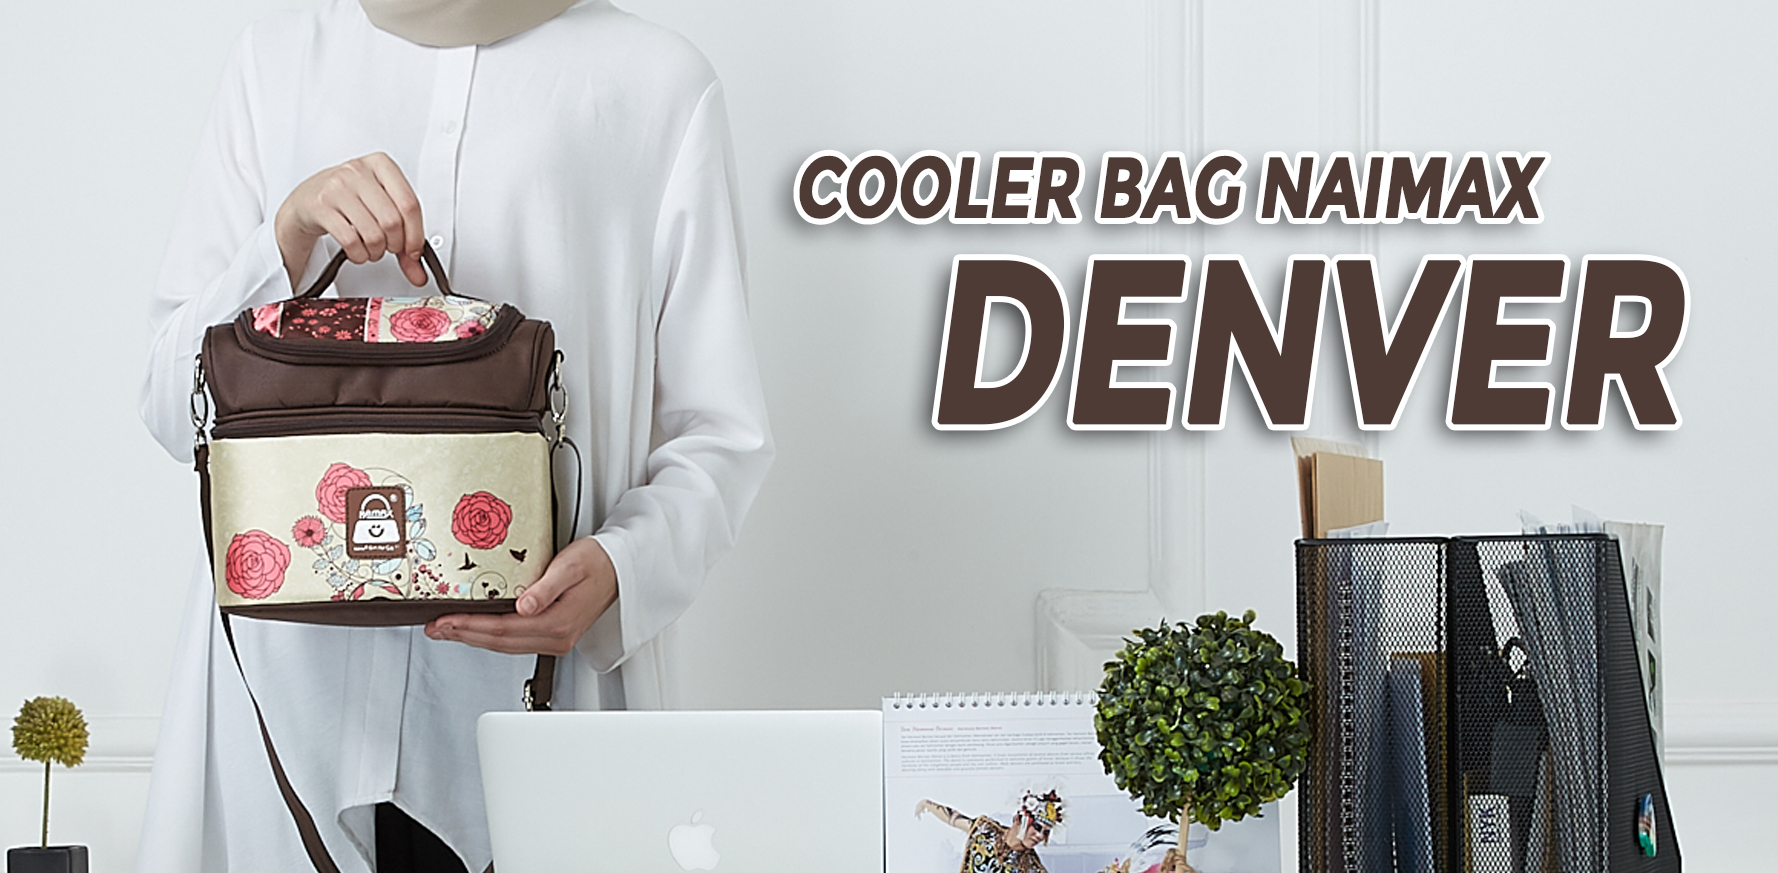 cooler bag,cooler bag asi,cooler bag gabag,cooler bag besar,cooler bag murah,cooler bag allegra,cooler bag ransel,cooler bag dialogue,cooler bag asi gabag,cooler bag backpack,cooler bag adalah,cooler bag asi ransel,cooler bag asip,cooler bag ice,cooler bag asi bka,cooler bag asi shopee,cooler bag asi murah,cooler bag bagus,cooler bag bka,cooler bag baby,cooler bag bisa dicuci,cooler bag baby 2 go,cooler bag backpack yang bagus,cooler bag baby scots,cooler bag bka vs gabag,cooler bag custom,cooler bag camping,cooler bag car,cooler bag coles,cooler bag coleman,cooler bag cotton on,cooler bag costco,cooler bag canadian tire,cooler bag checkers,cooler bag countdown